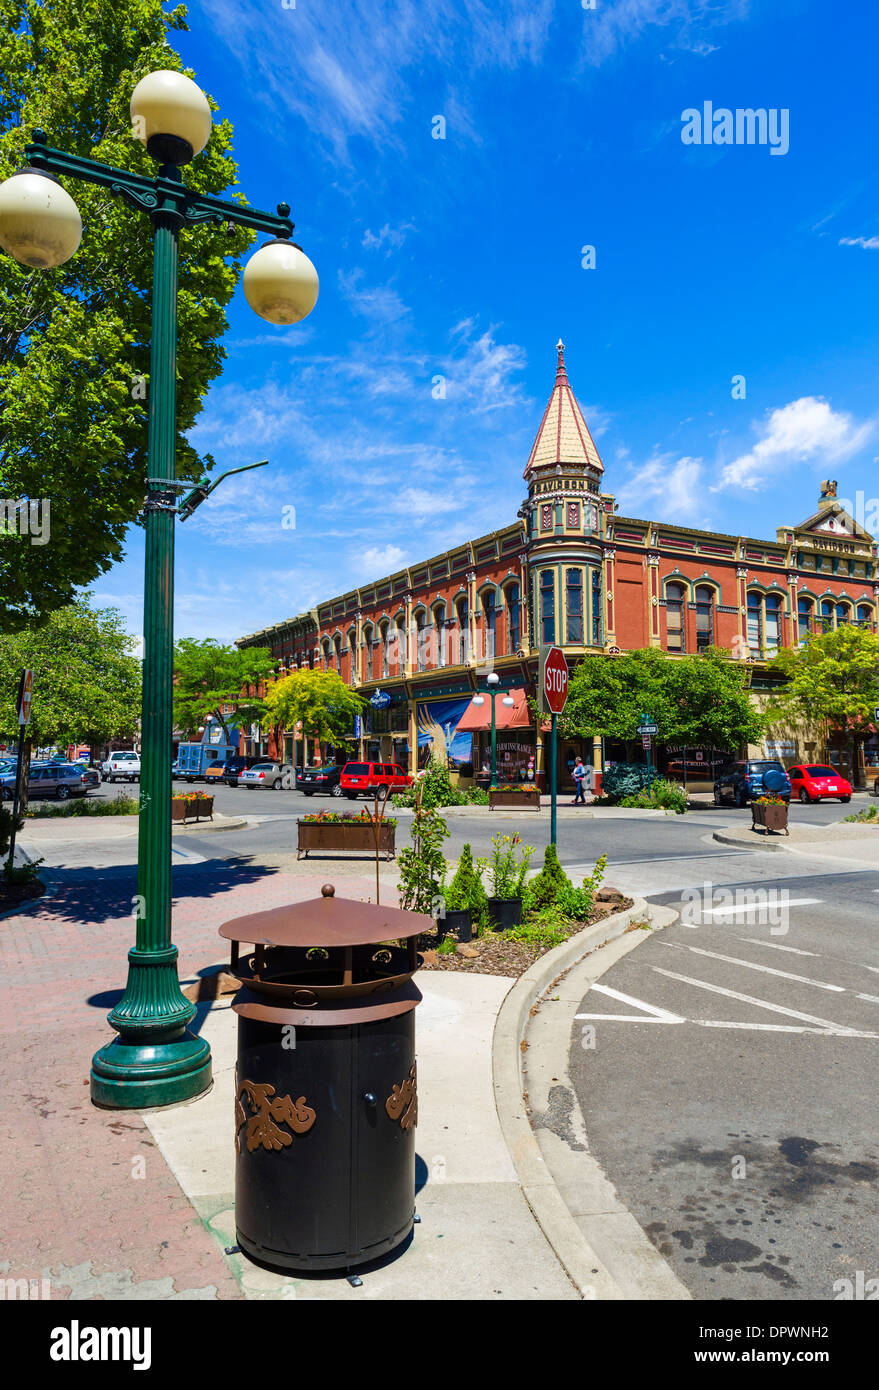 The historic Davidson Building at the intersection of Pearl Street and West 4th, Ellensburg, Washington , USA - Stock Image